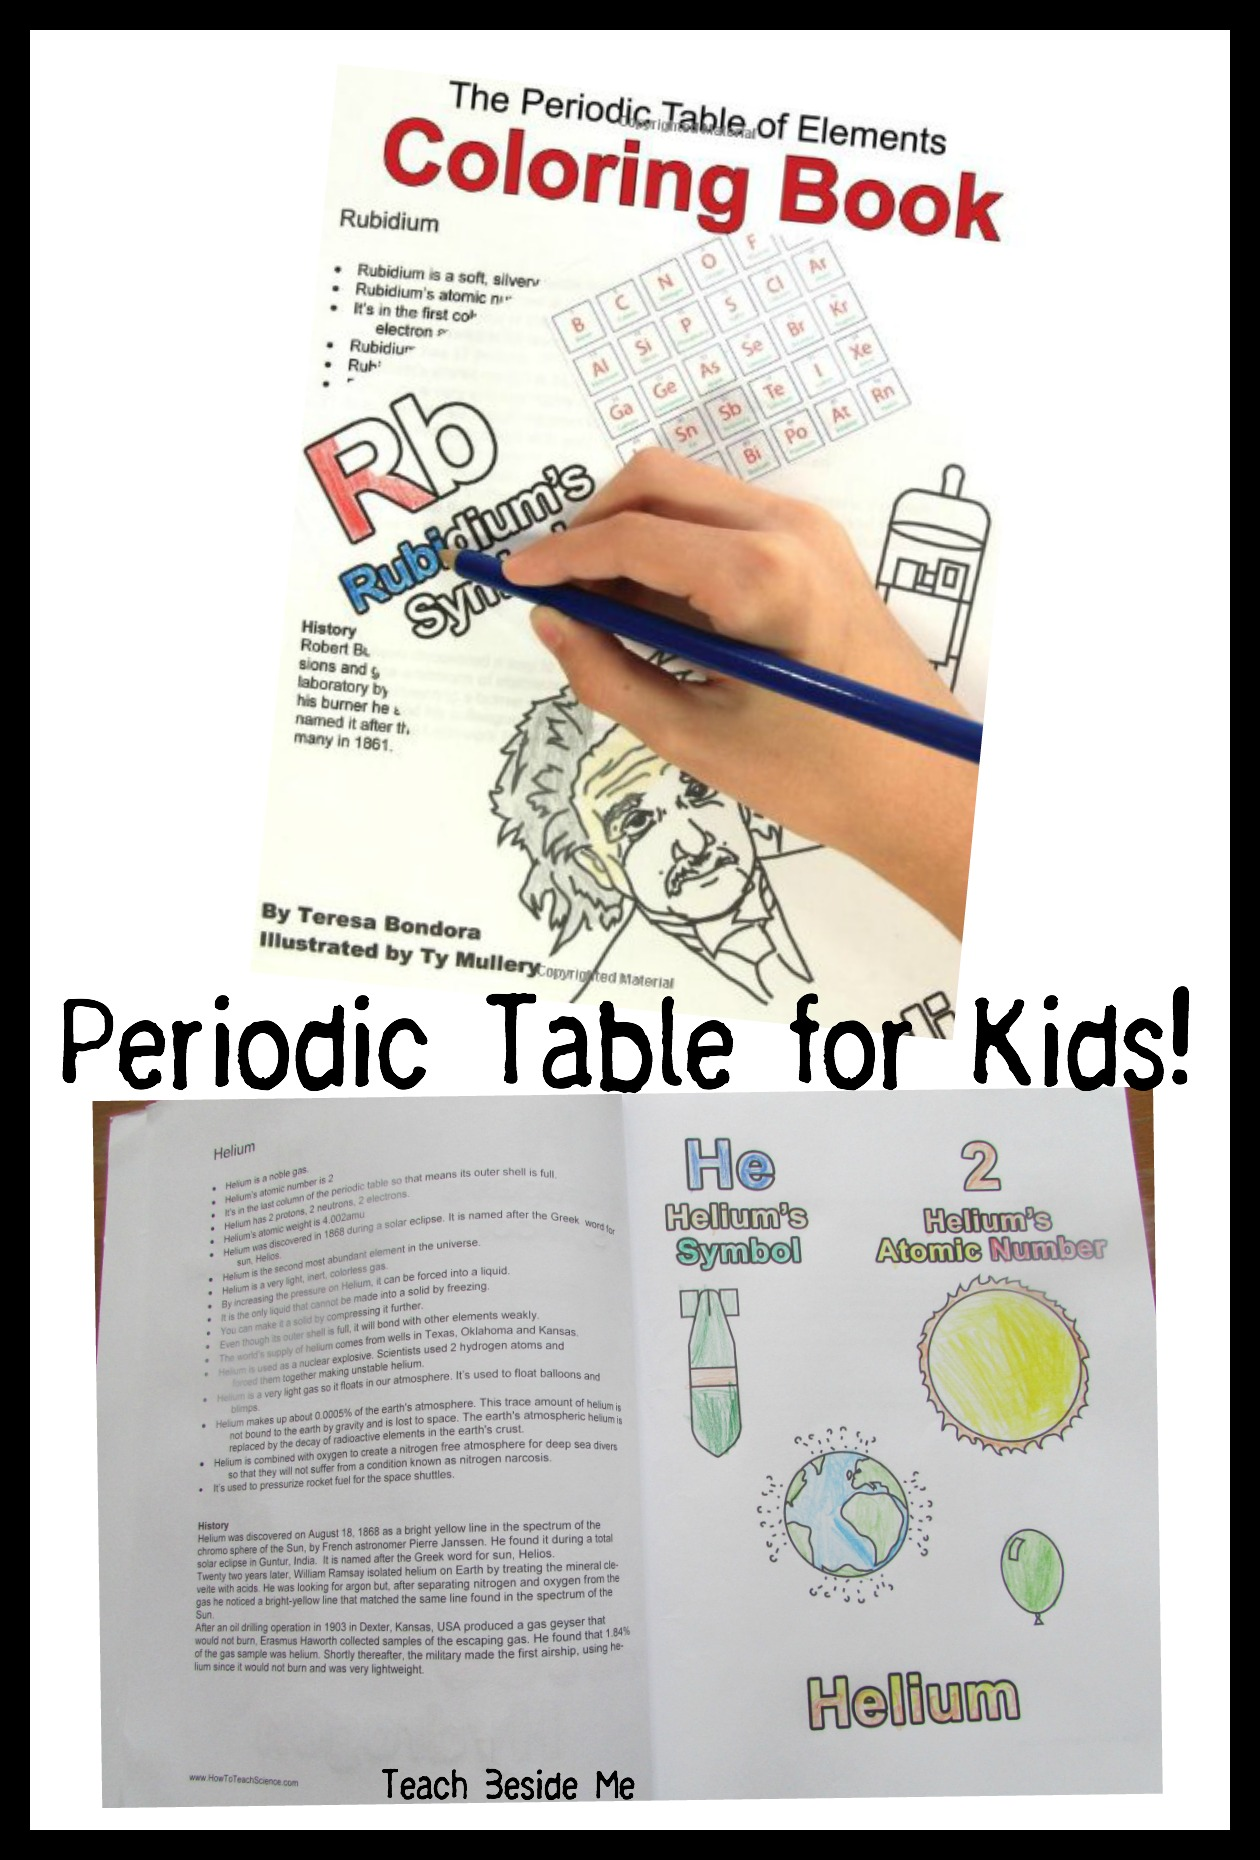 Periodic table battleship teach beside me teaching chemistry to kids learning the periodic table urtaz Choice Image